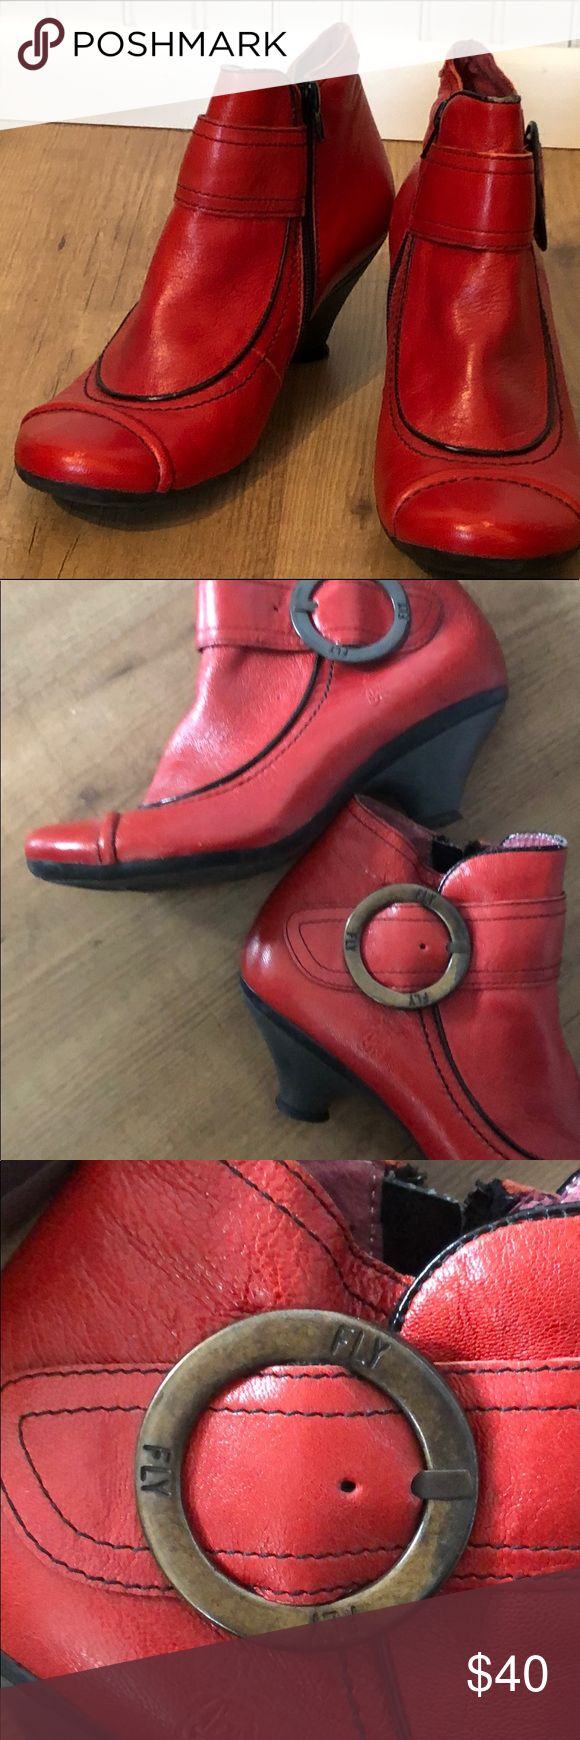 """Gorgeous Fly London Red Low Heel Boots Size 38 lipstick red Fly London boots. Zipper opening, low 1"""" heel with brass buckle. In great almost new condition Fly London Shoes Ankle Boots & Booties"""